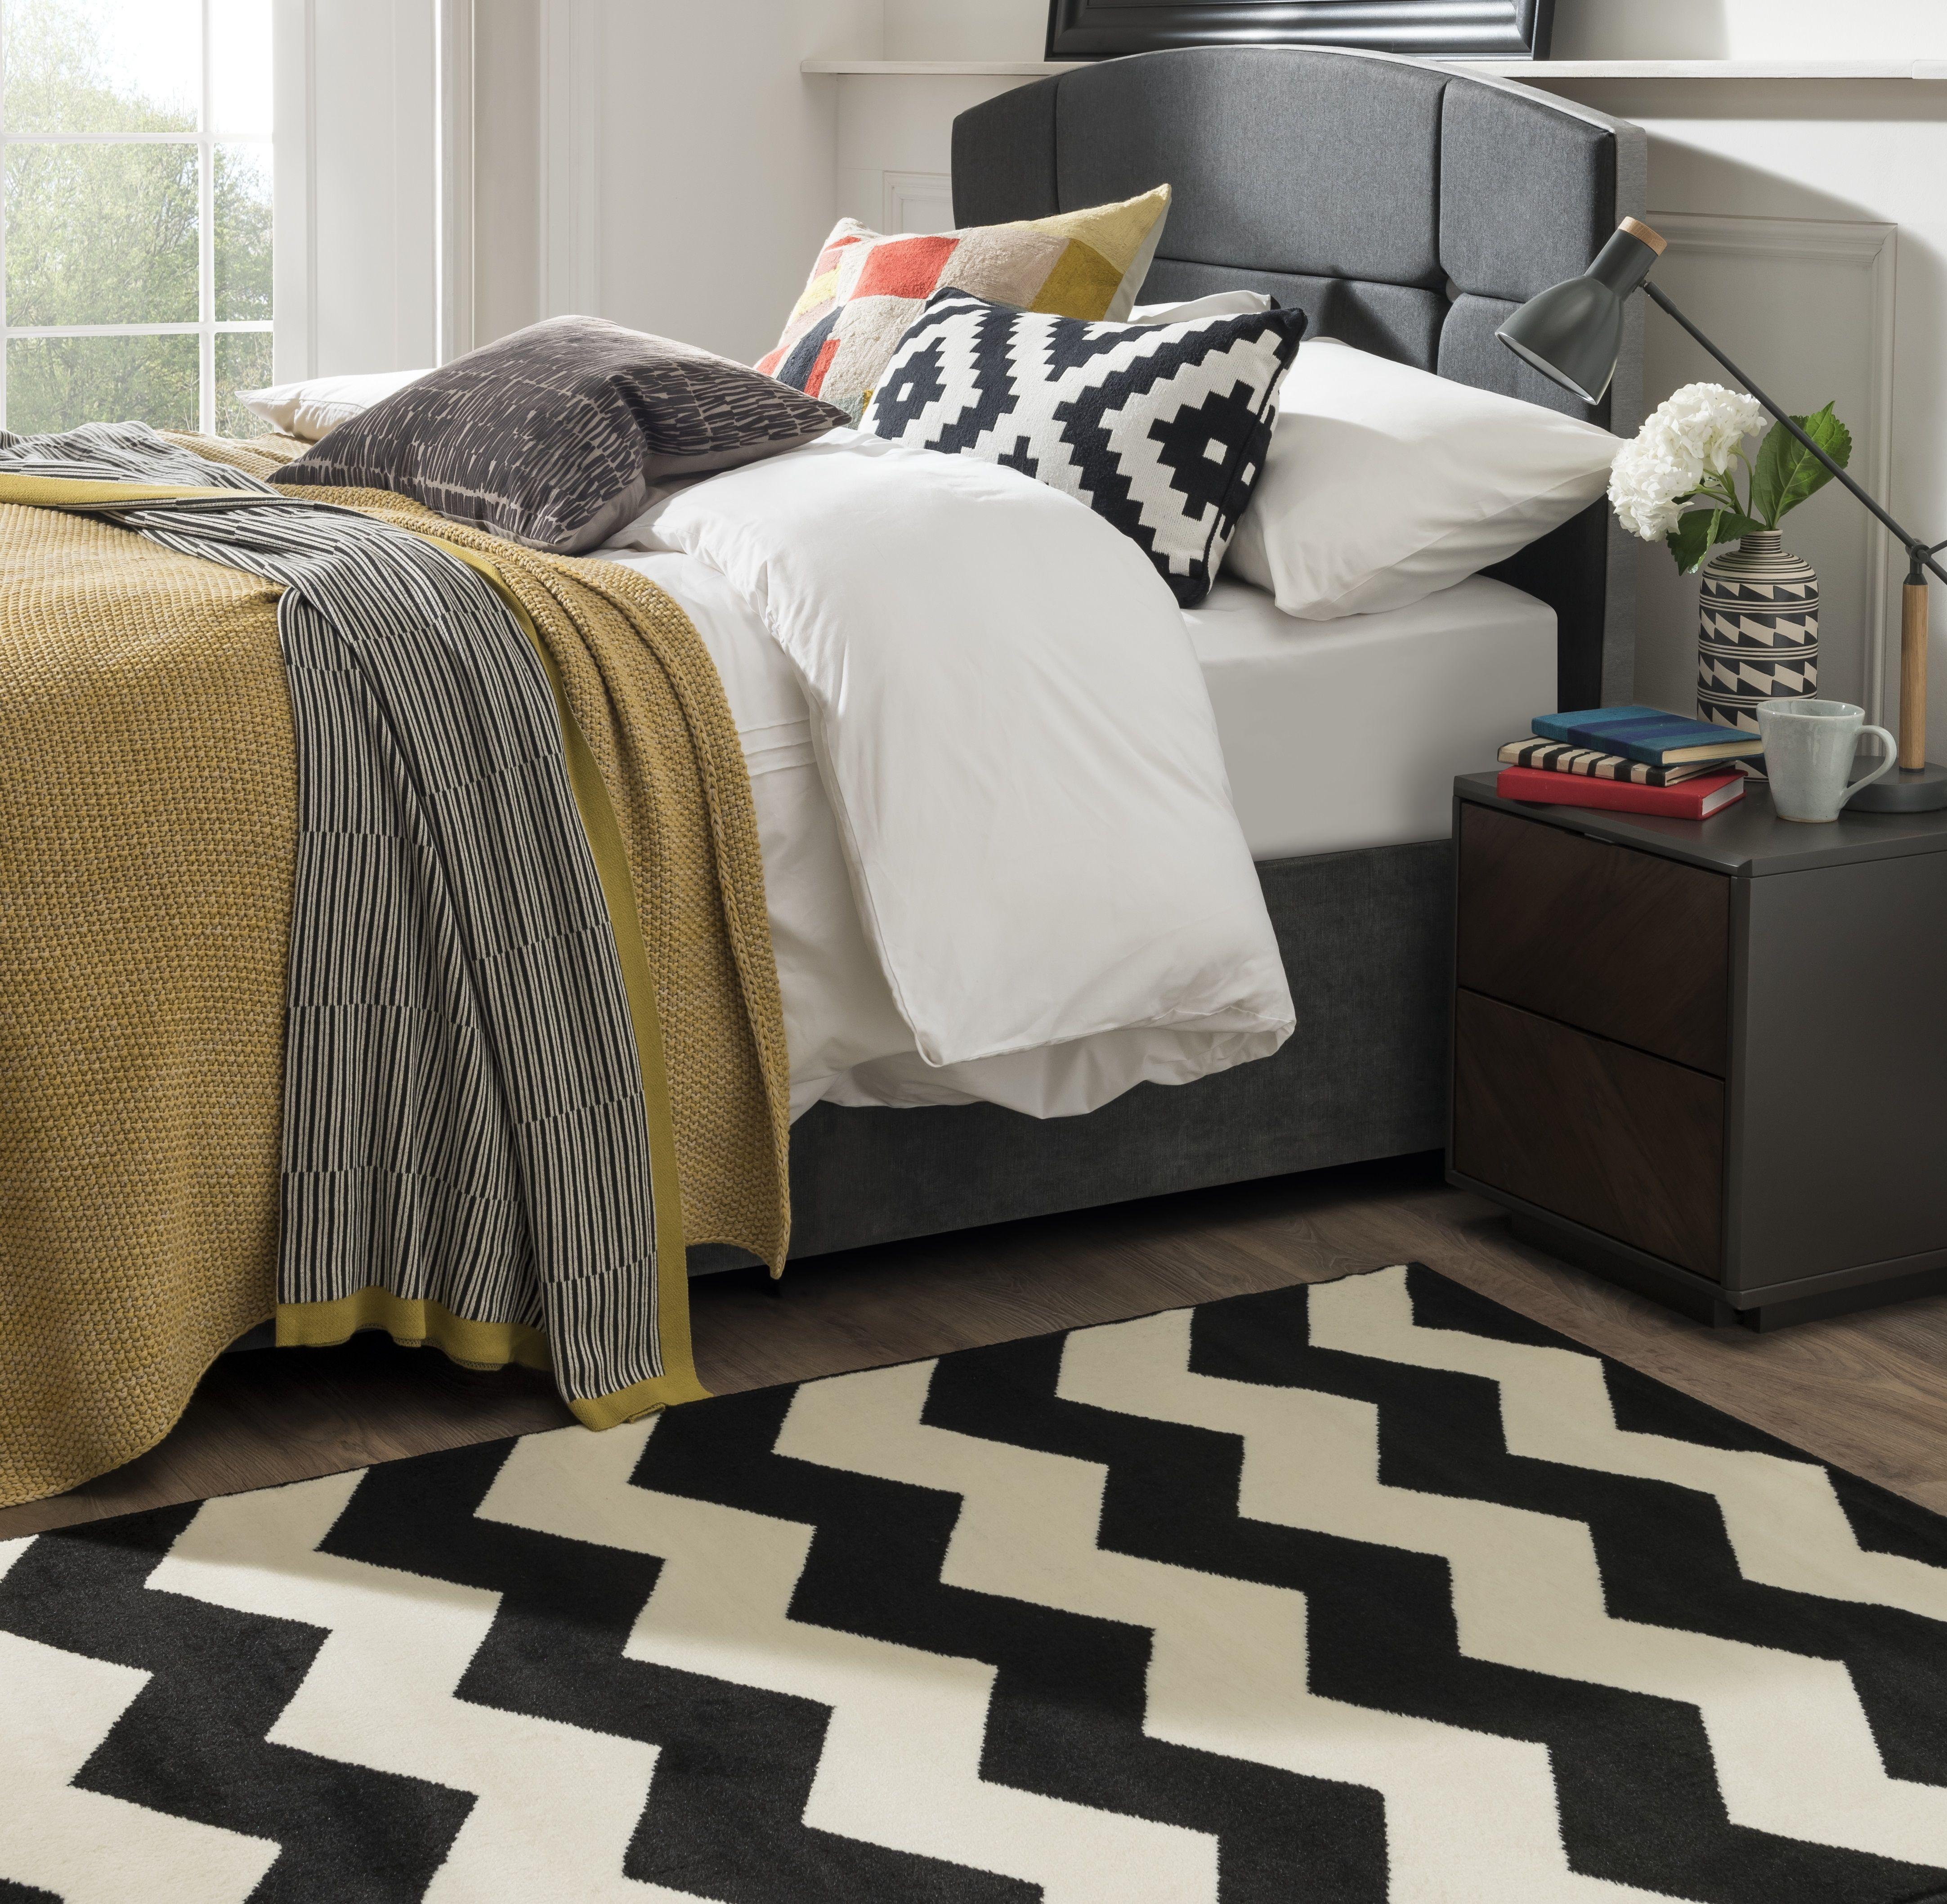 Pin by Carpetright on Our latest rugs Black white rug